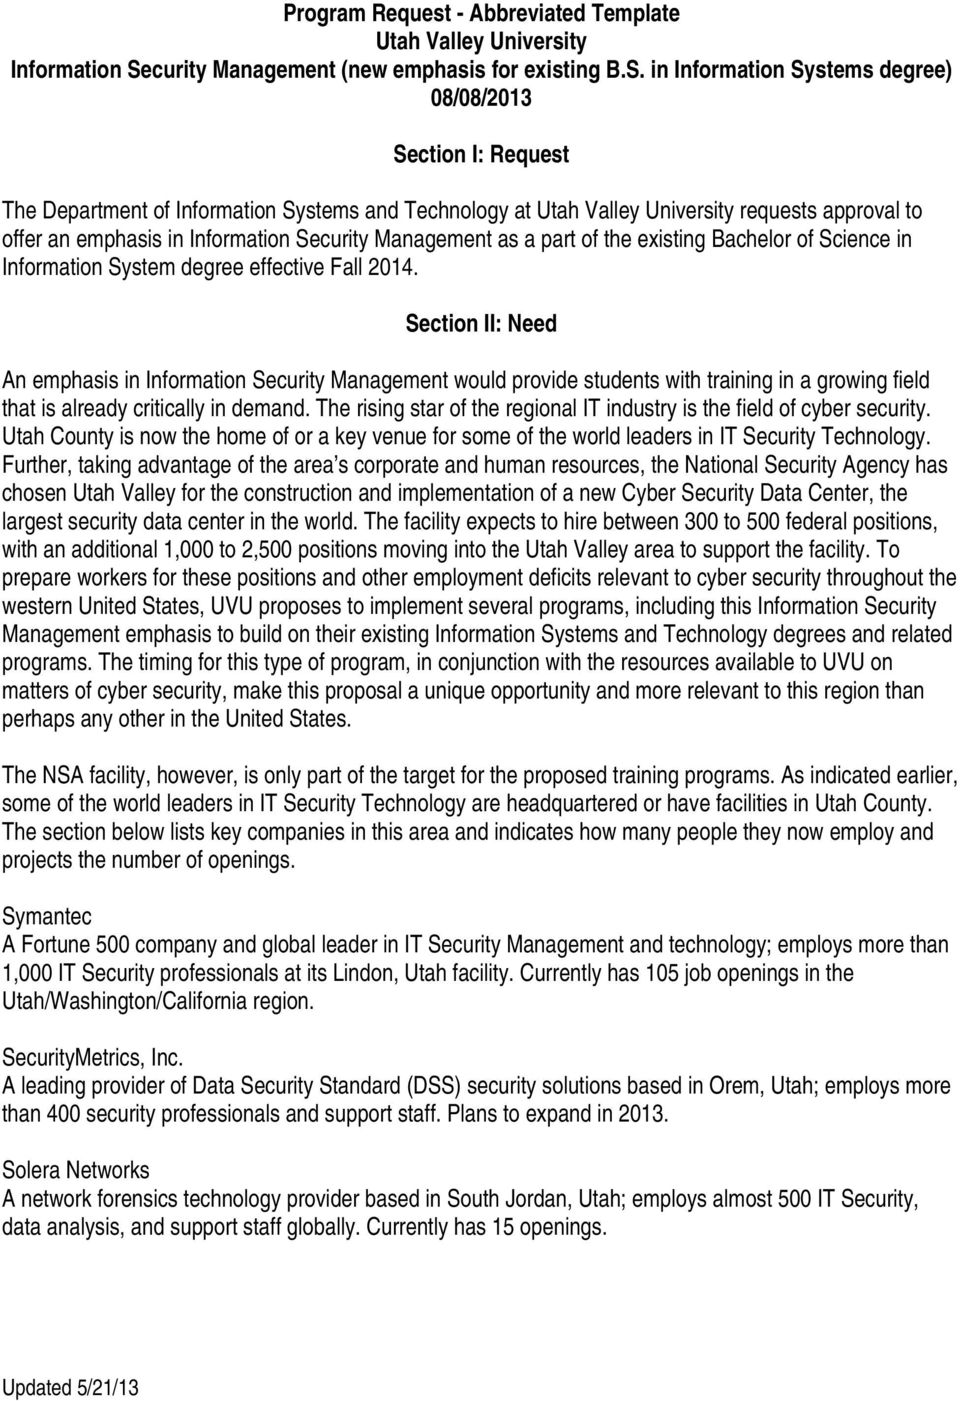 in Information Systems degree) 08/08/2013 Section I: Request The Department of Information Systems and Technology at Utah Valley University requests approval to offer an emphasis in Information